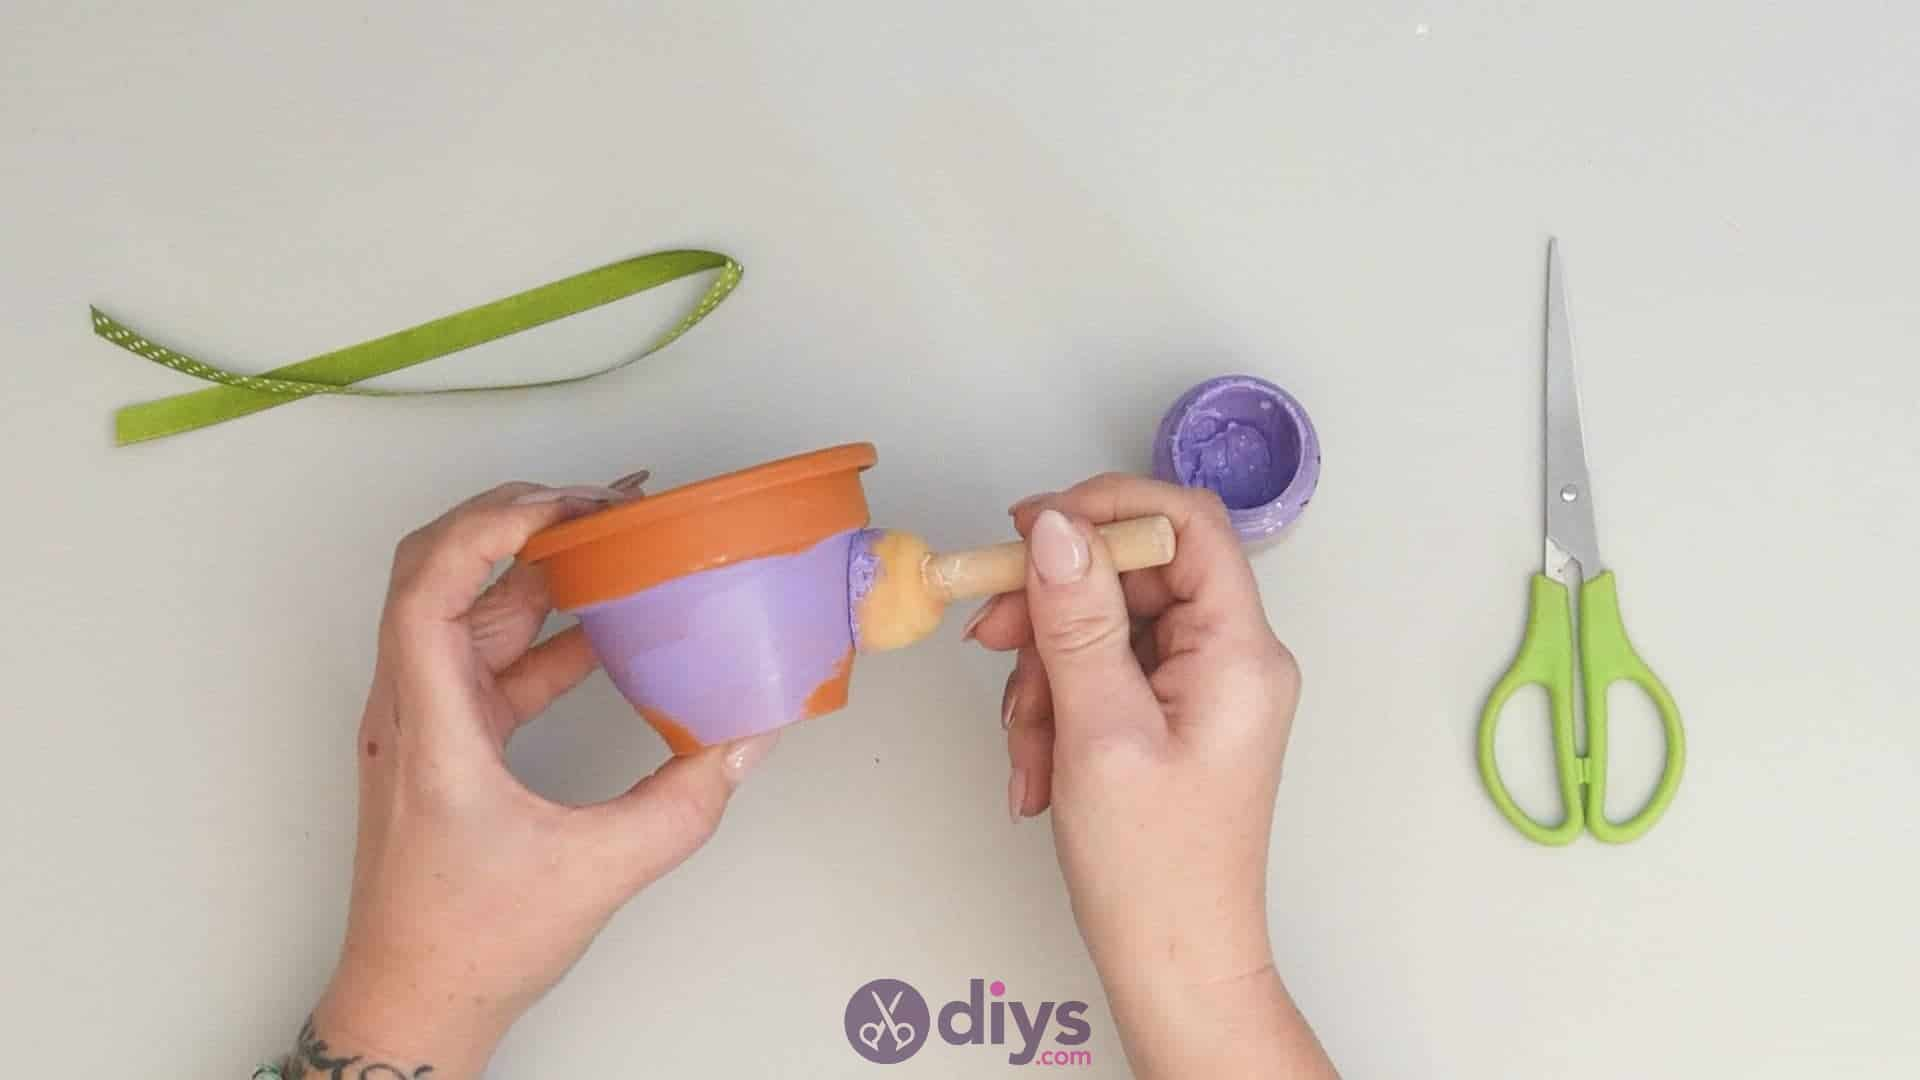 Diy colourful flower pot step 2a